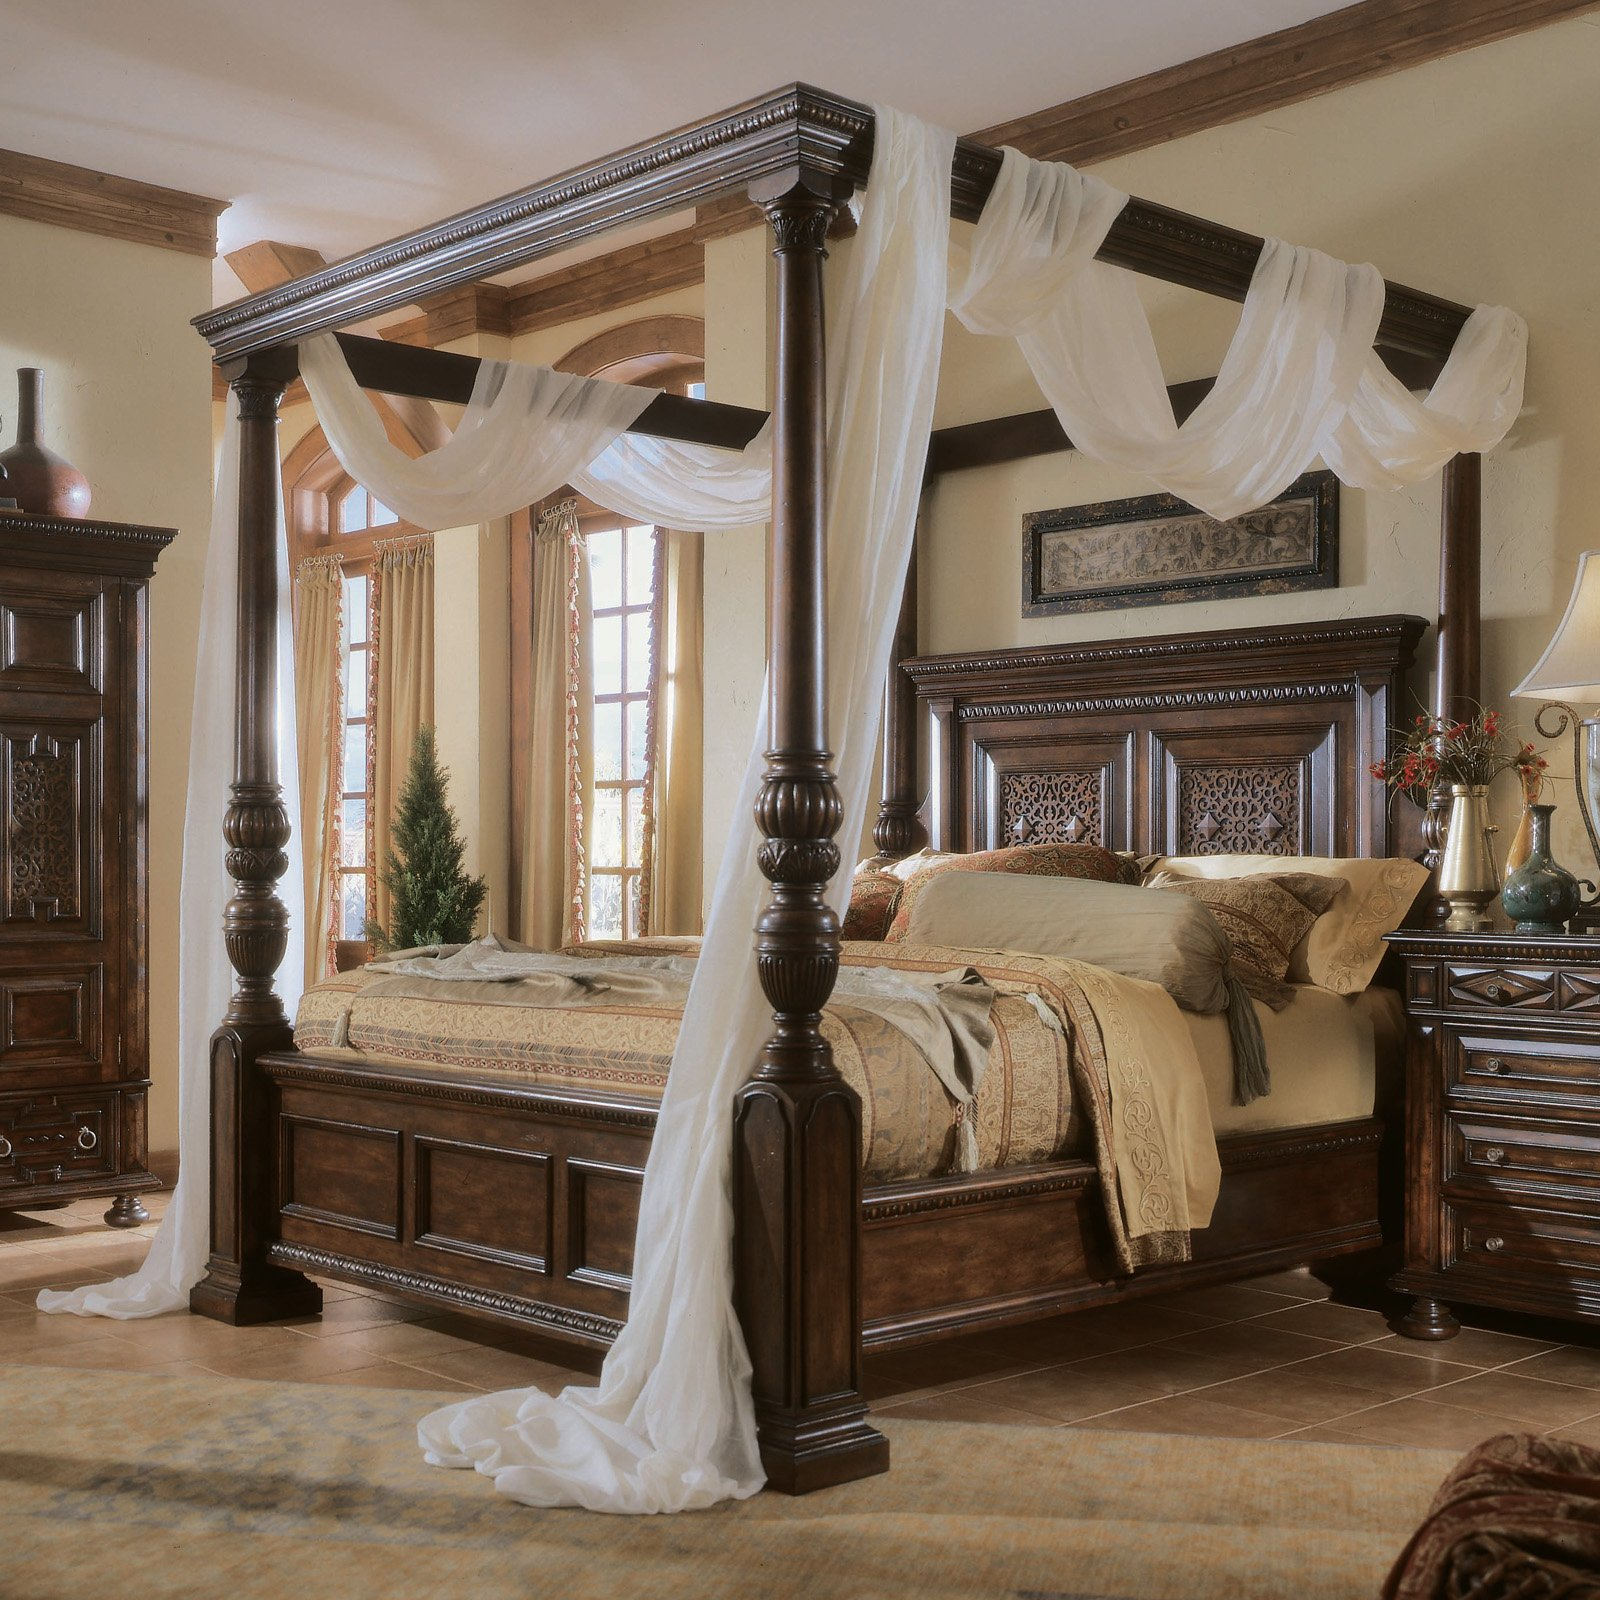 Interior Design Home Decor Furniture Amp Furnishings The Home Look 15 Beautiful Canopy Beds